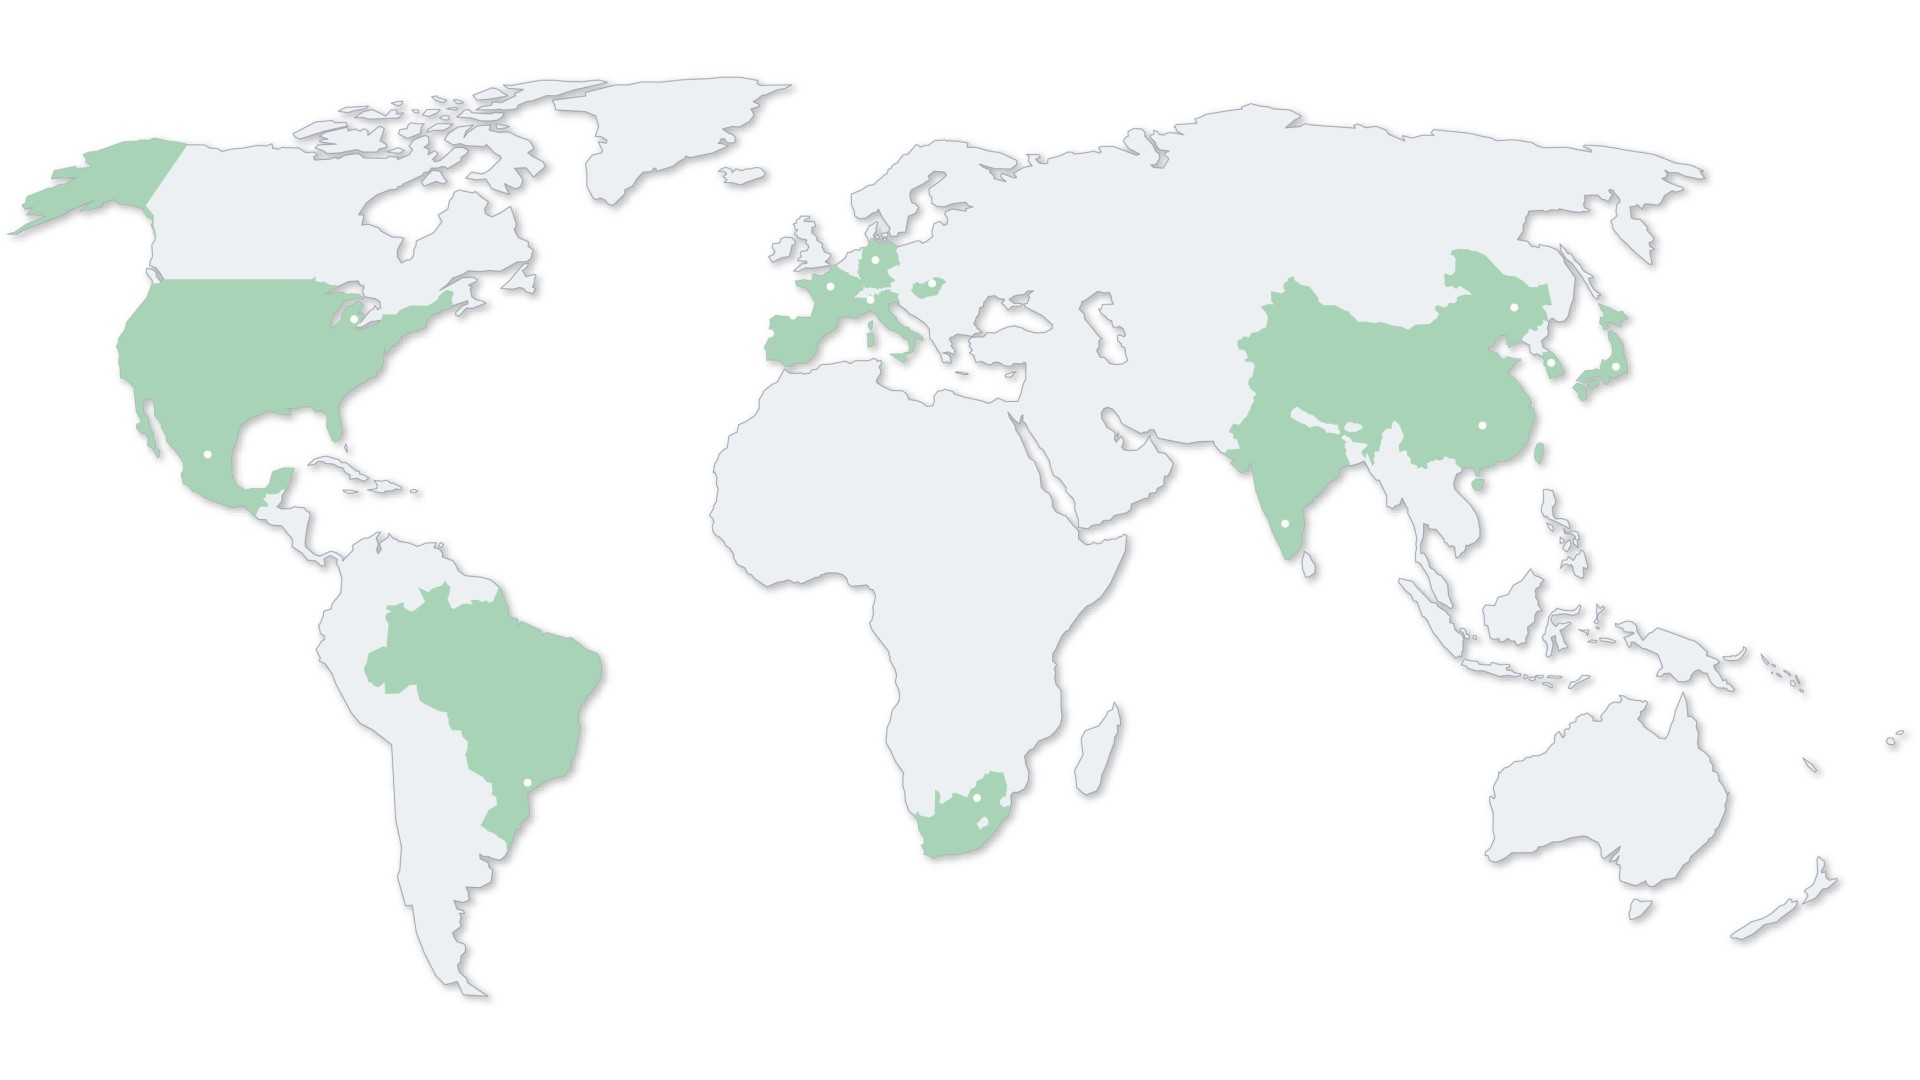 World map with SEG Autmotive locations